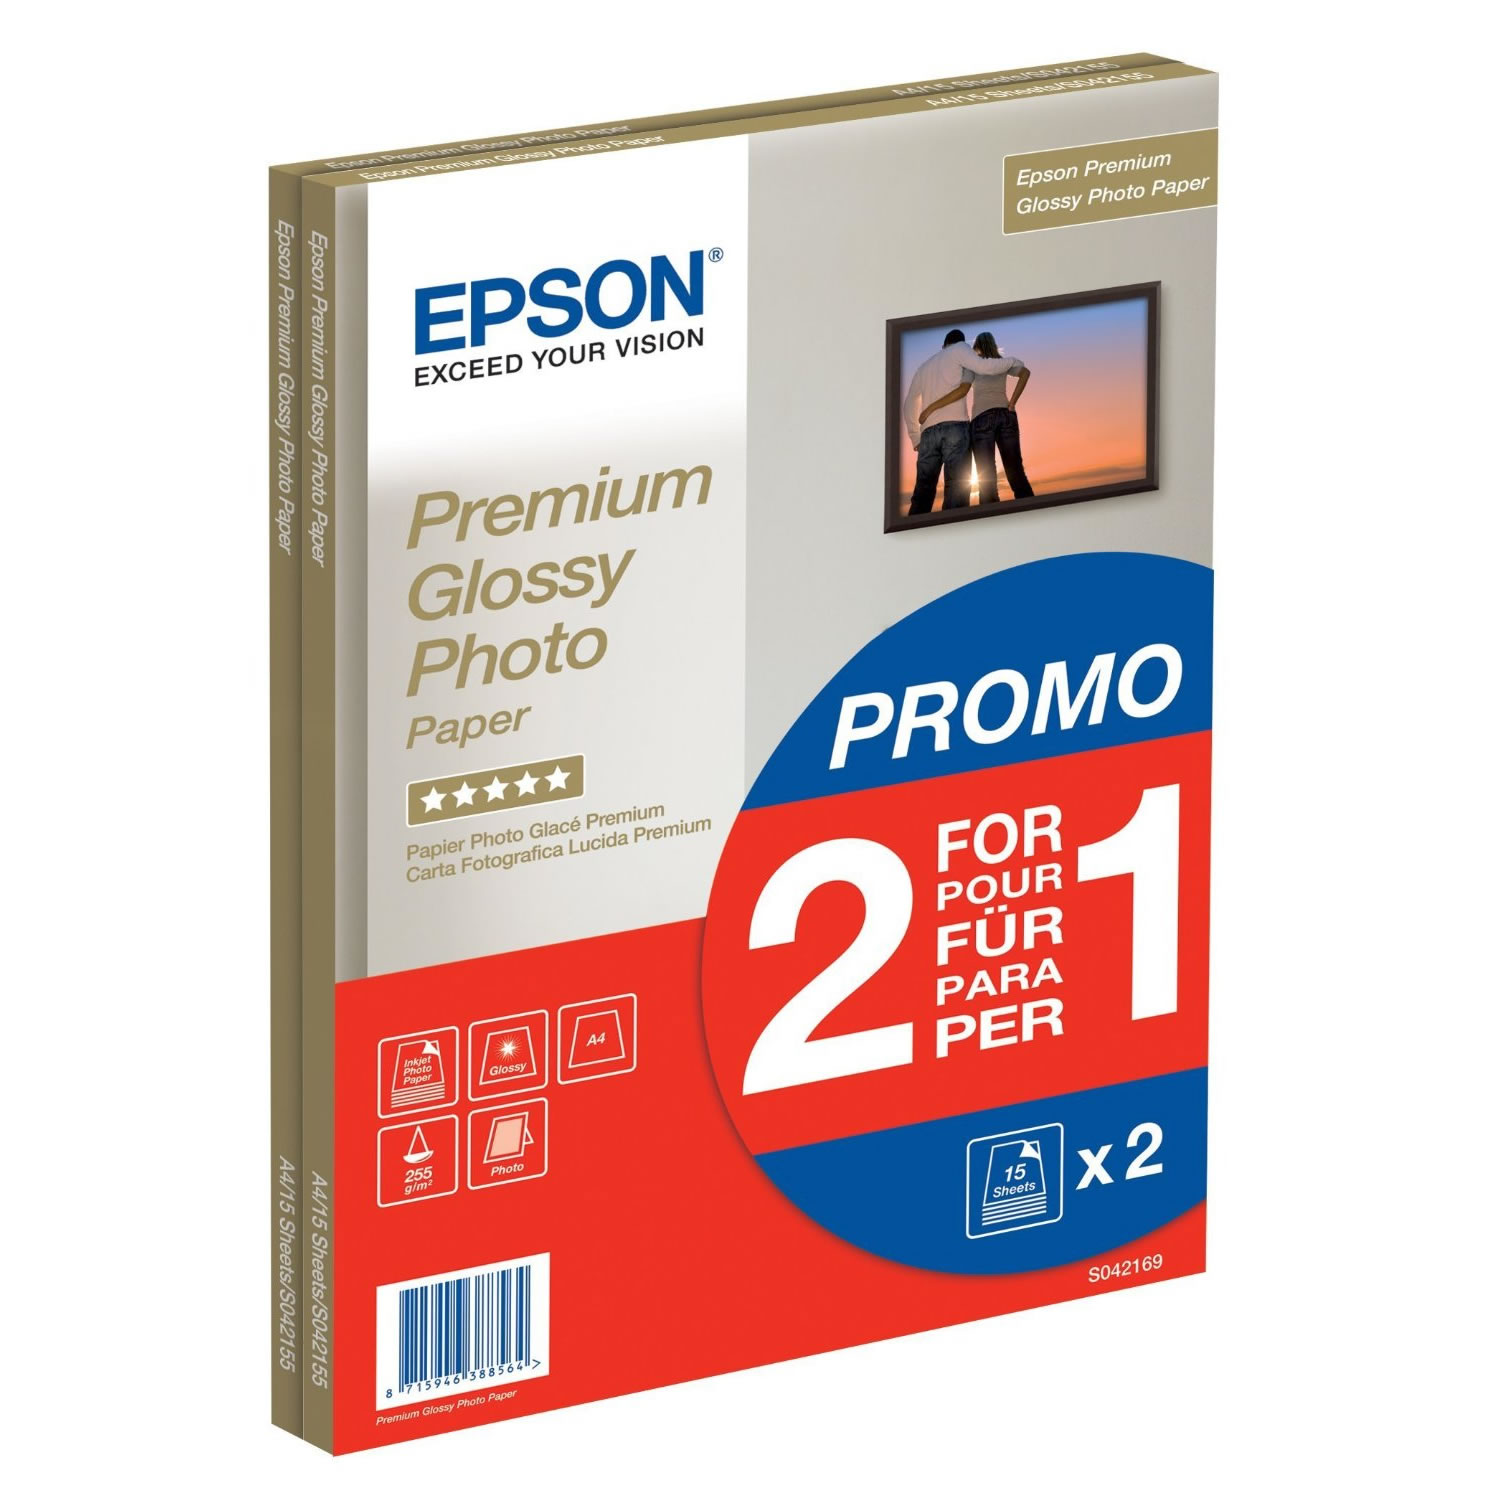 Epson Premium Glossy Photo Paper 255g A4 30 Sheets (2 x 15 Sheets)